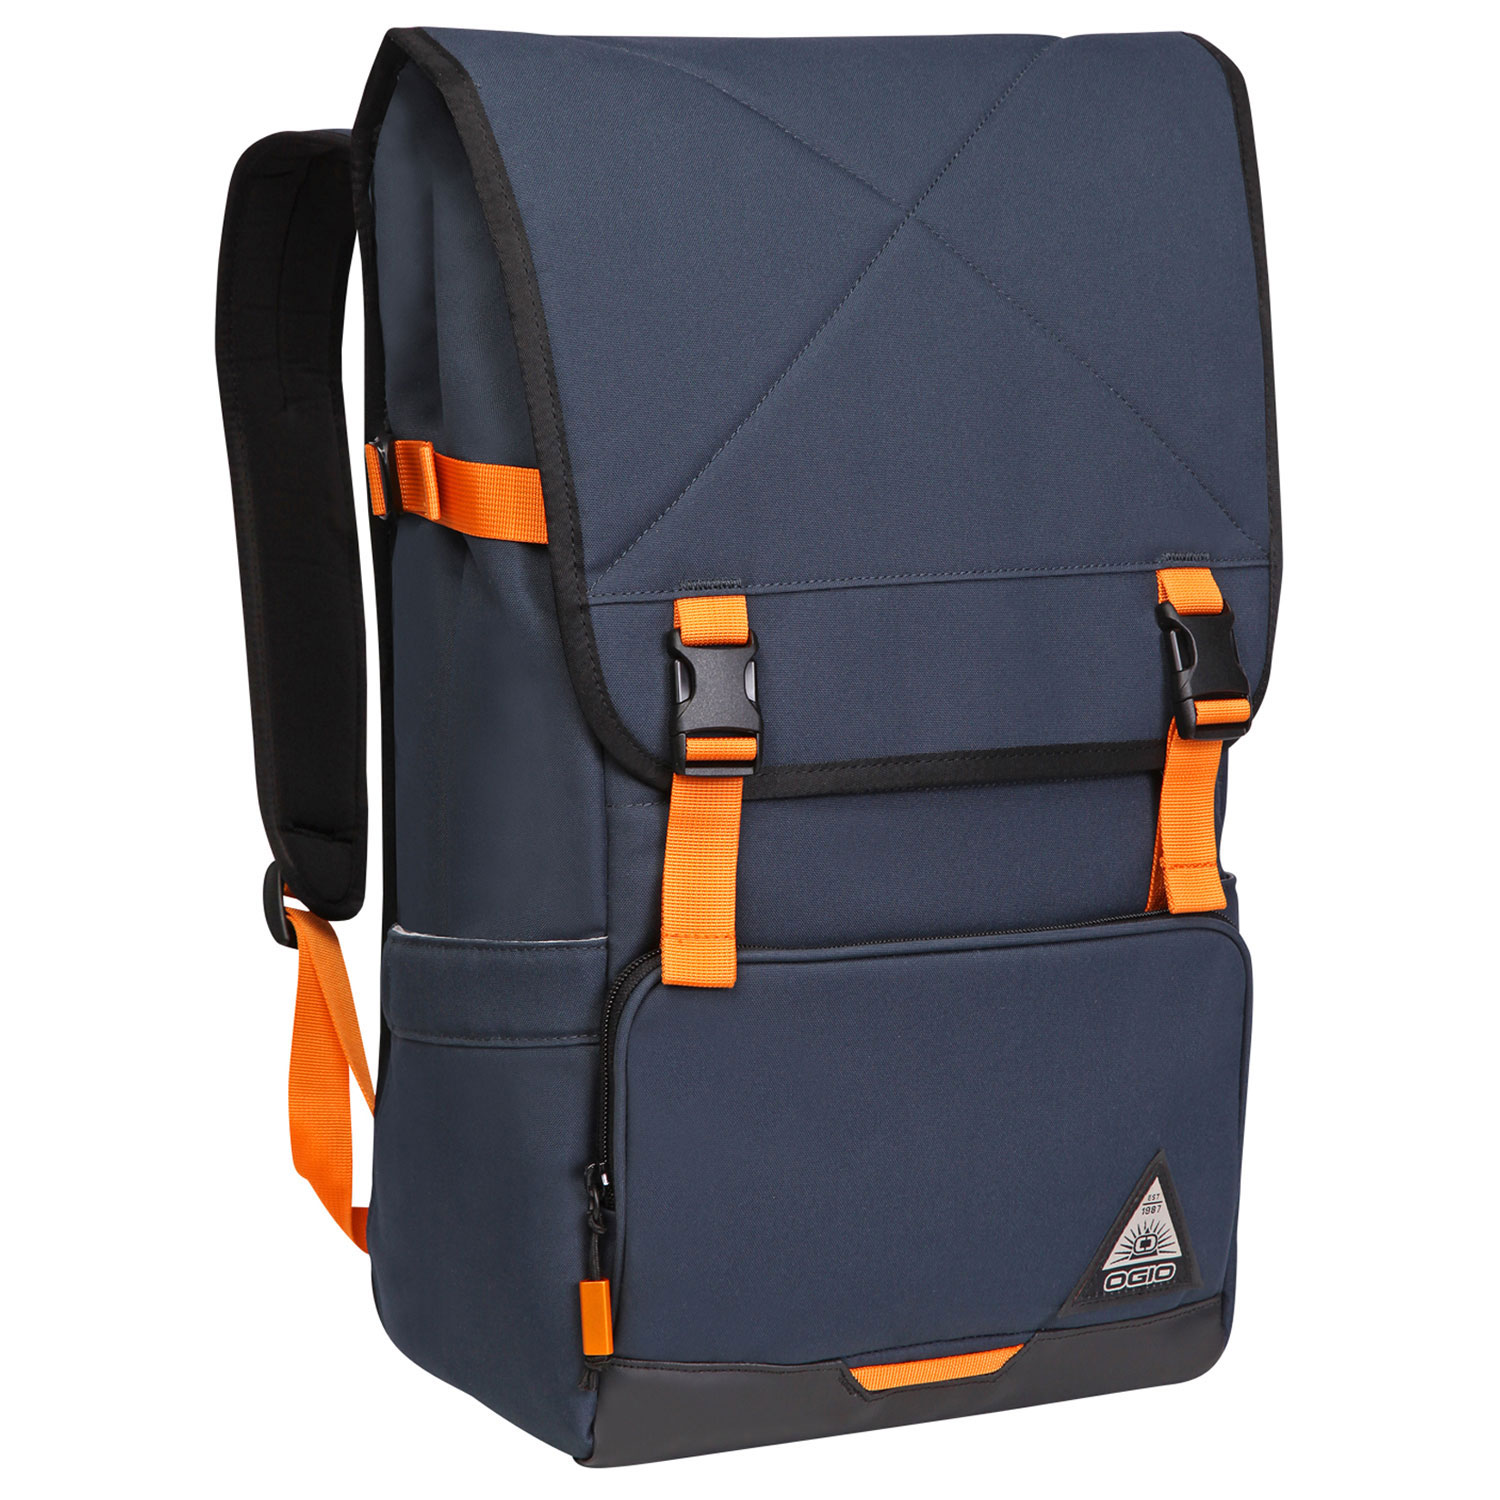 Ogio Ruck 22 Laptop Backpack - Blueberry, CoastWaterSports